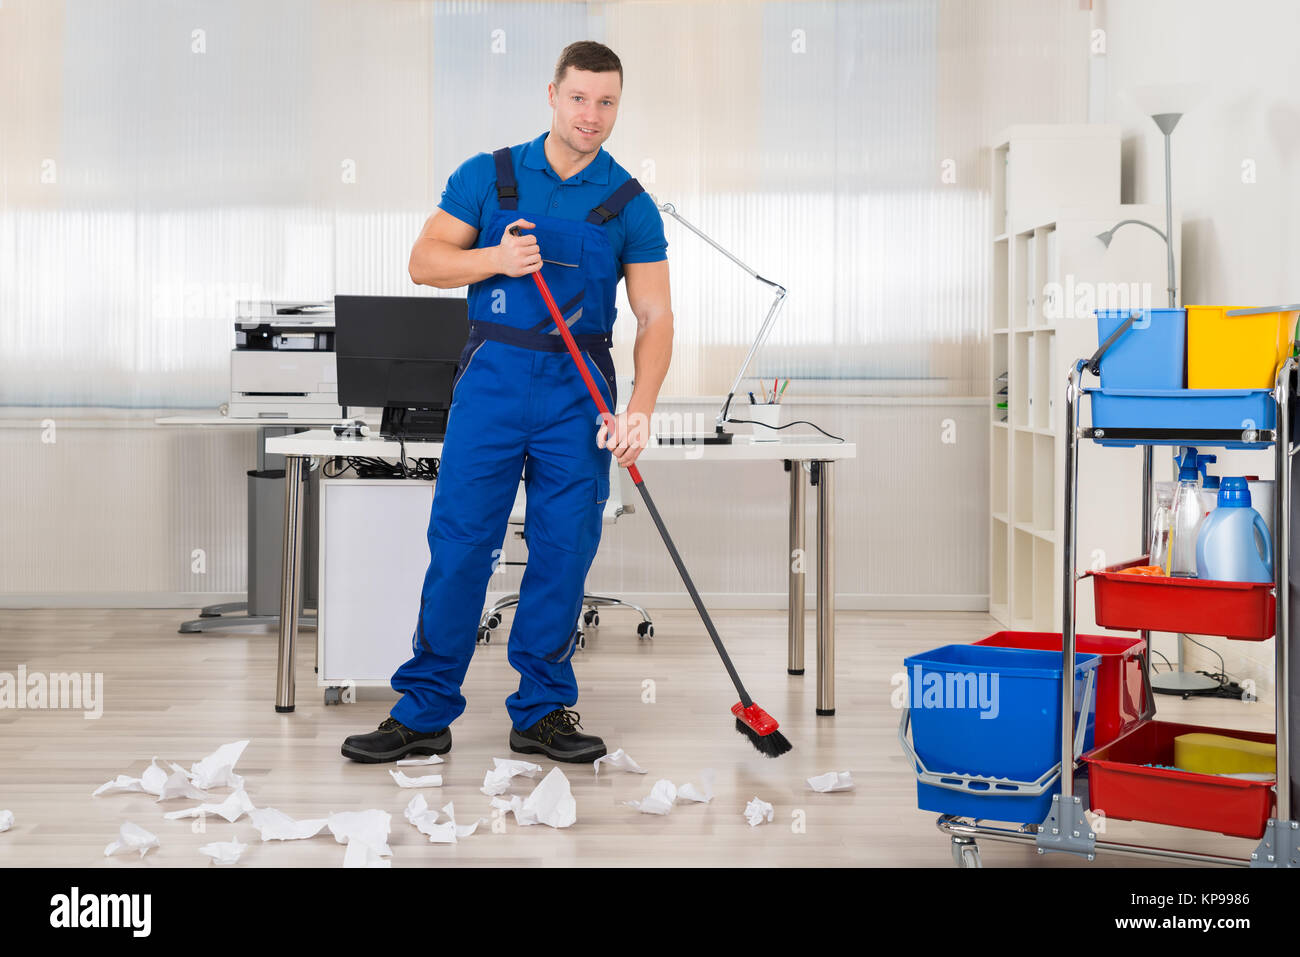 Janitor Cleaning Floor With Broom In Office - Stock Image